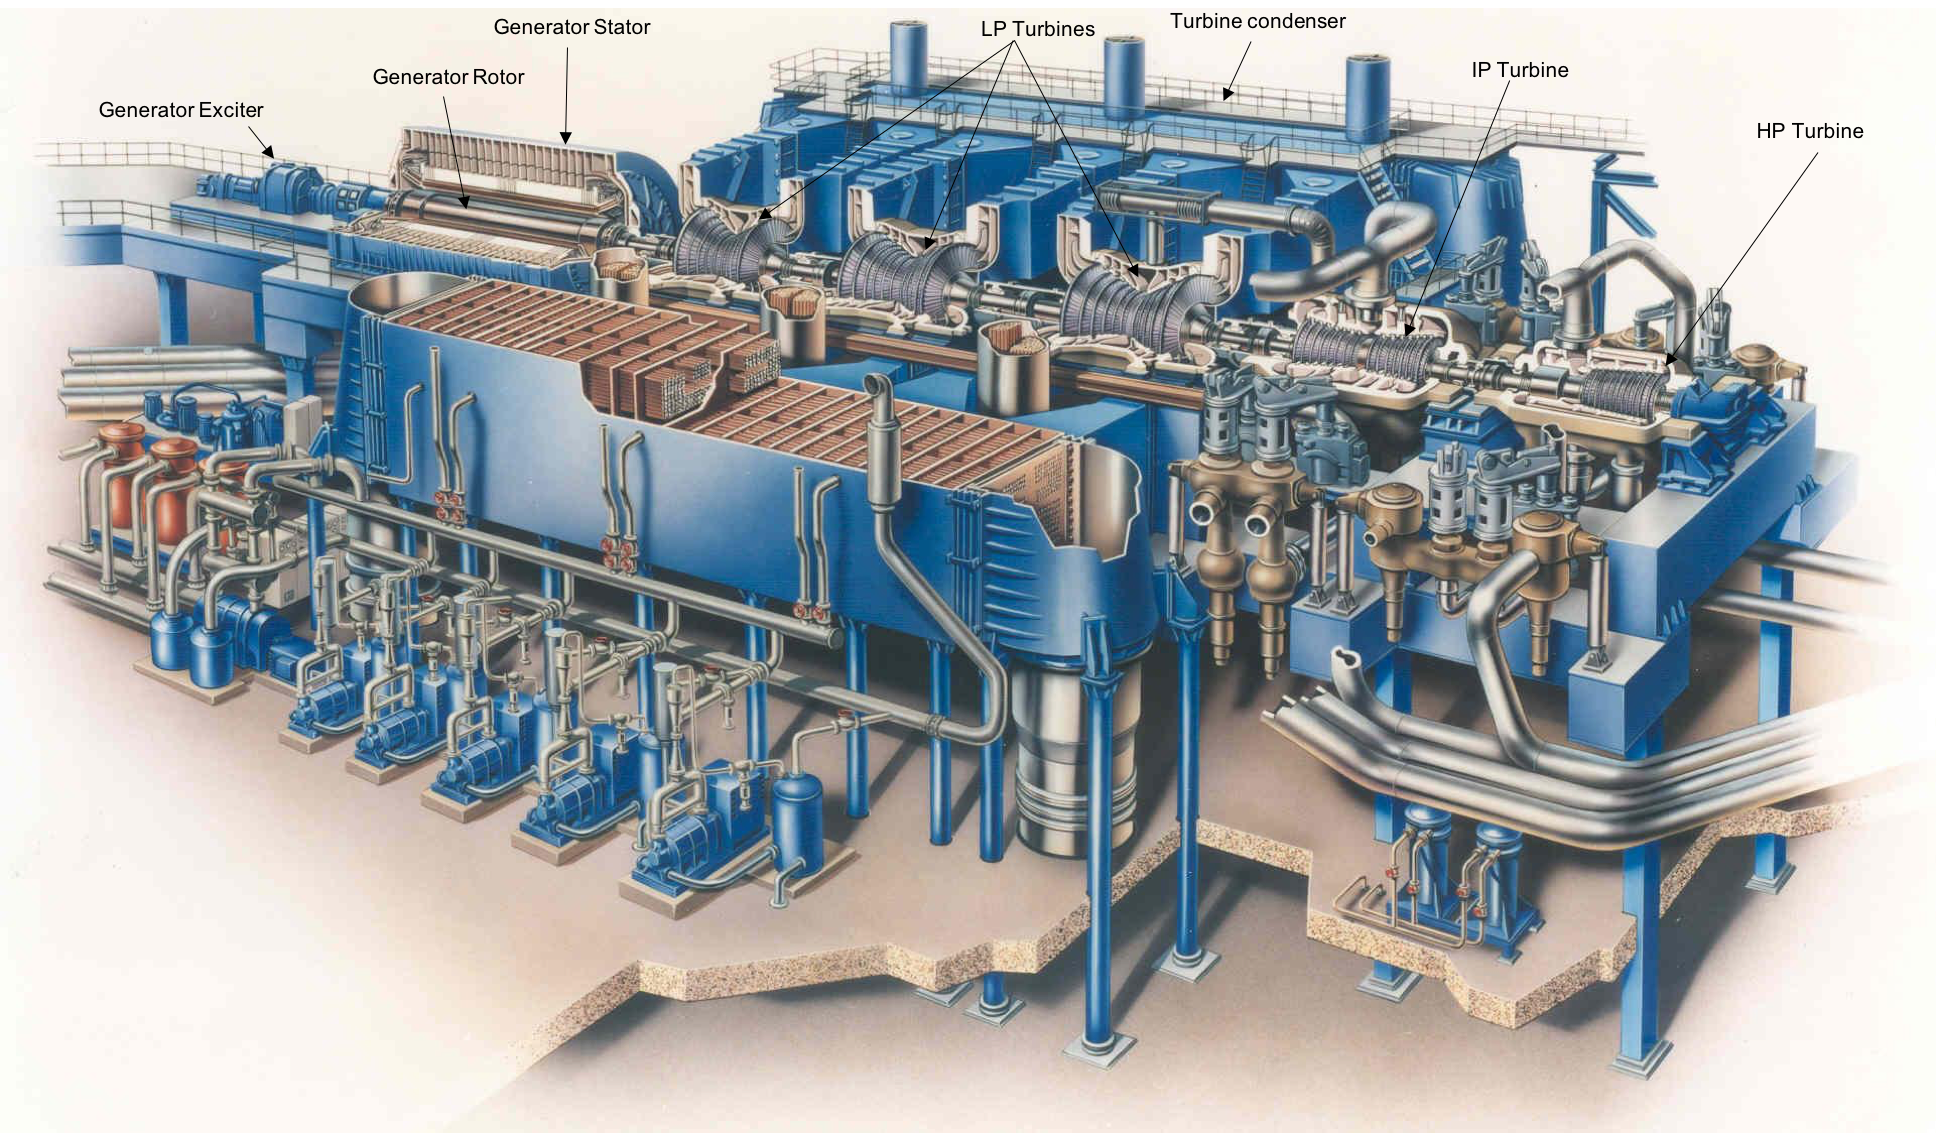 energy engineering 300 ton generator